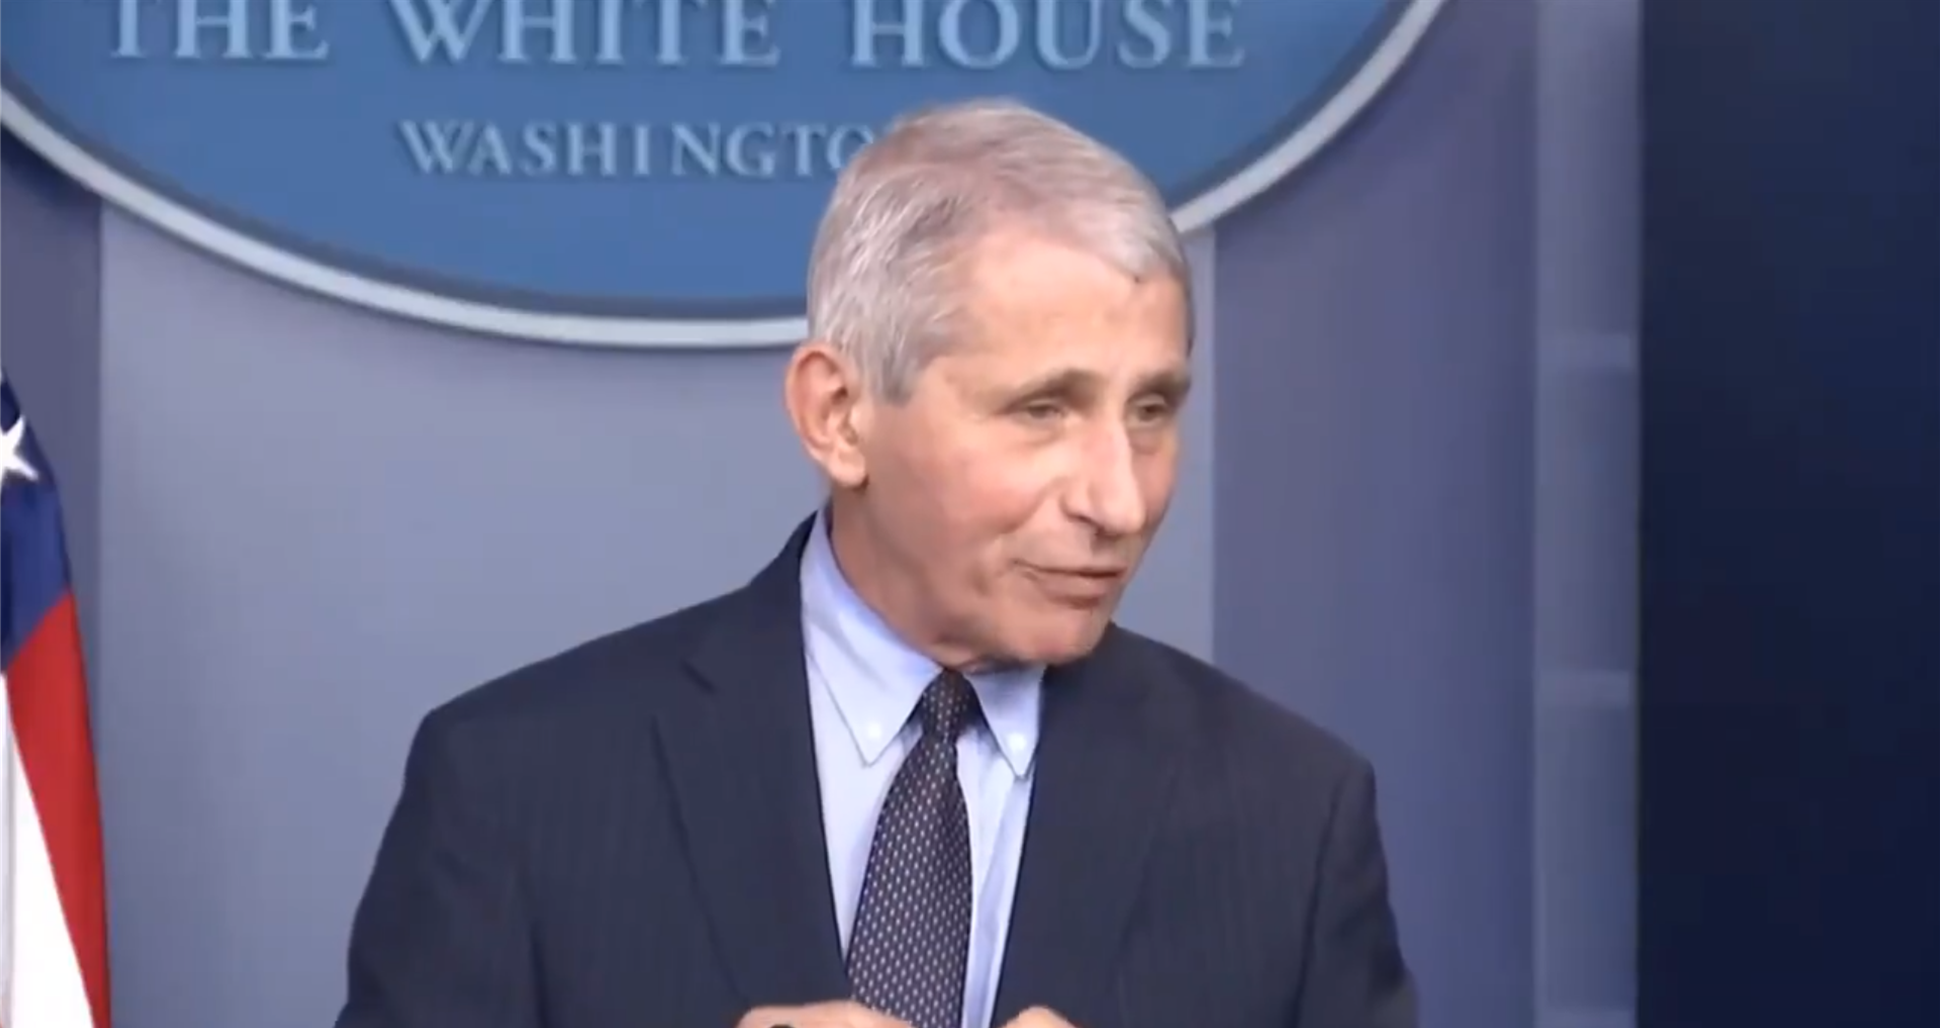 WATCH: Fauci discredits CNN story which claimed Biden administration received 'no plan' on vaccine rollout and were 'starting from scratch'